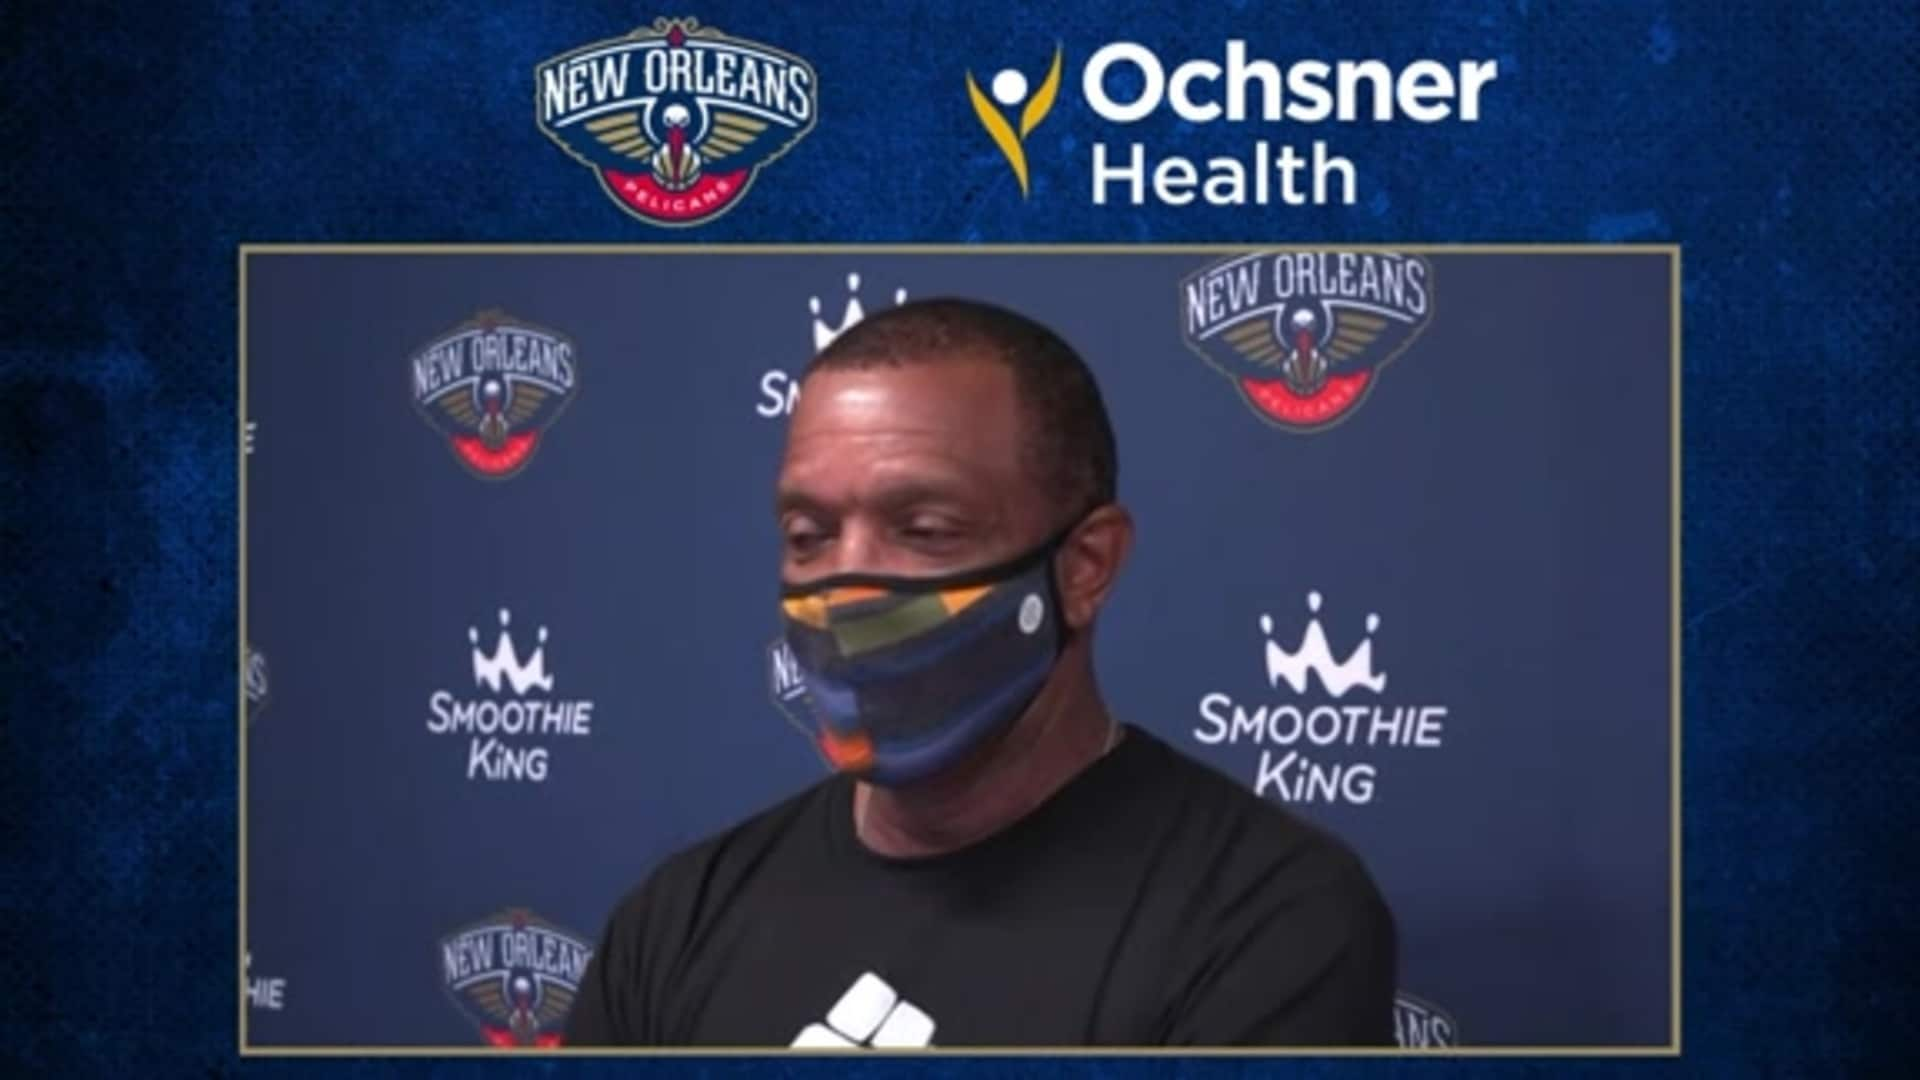 Alvin Gentry looks to bounce back from tough loss vs Jazz | Ochsner Pelicans Practice